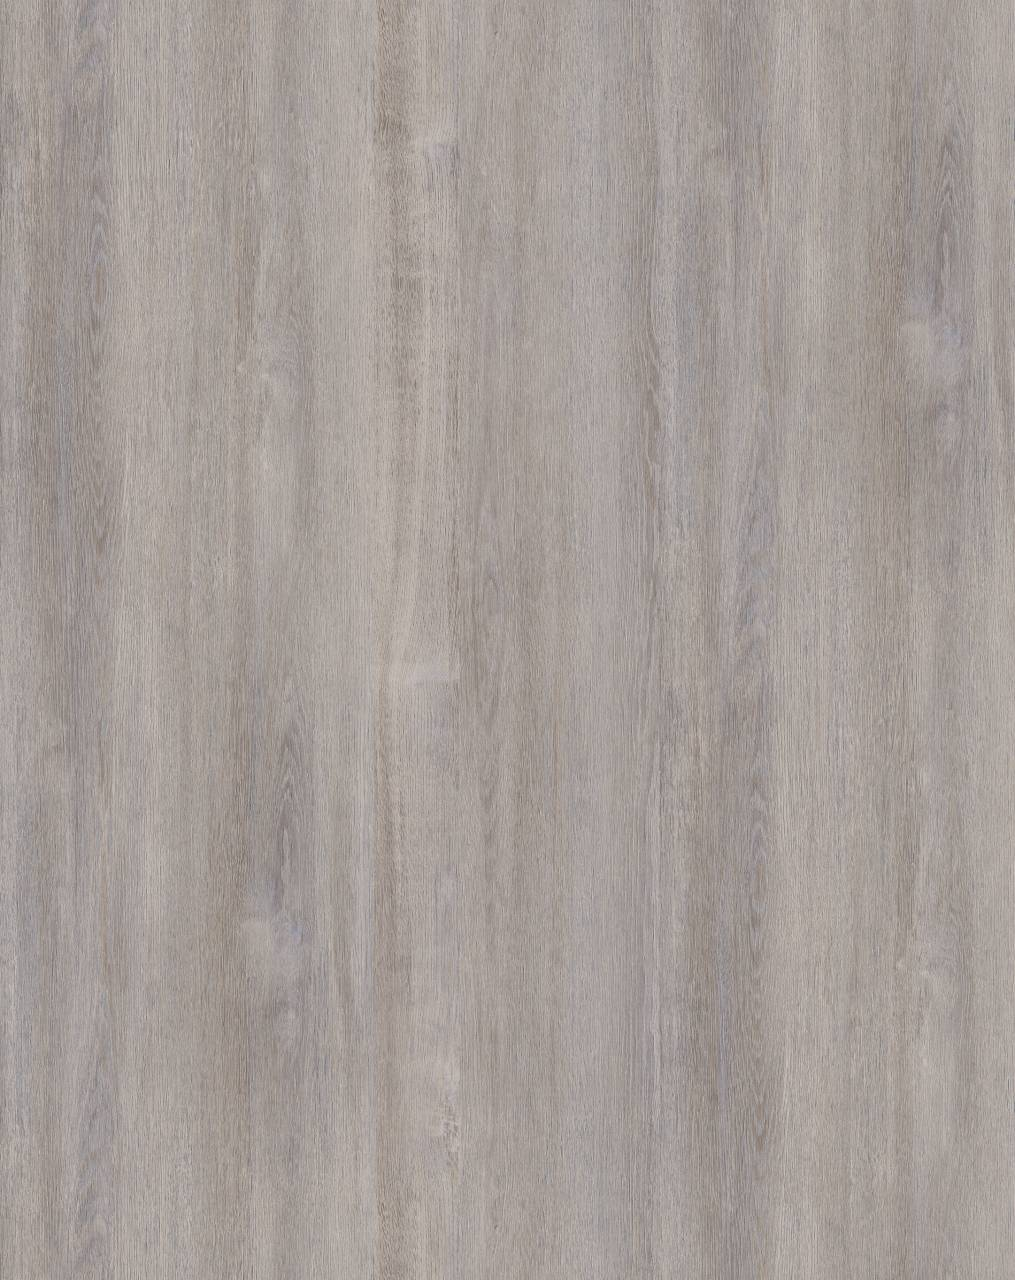 K079 Grey Clubhouse Oak (MF PB sample)